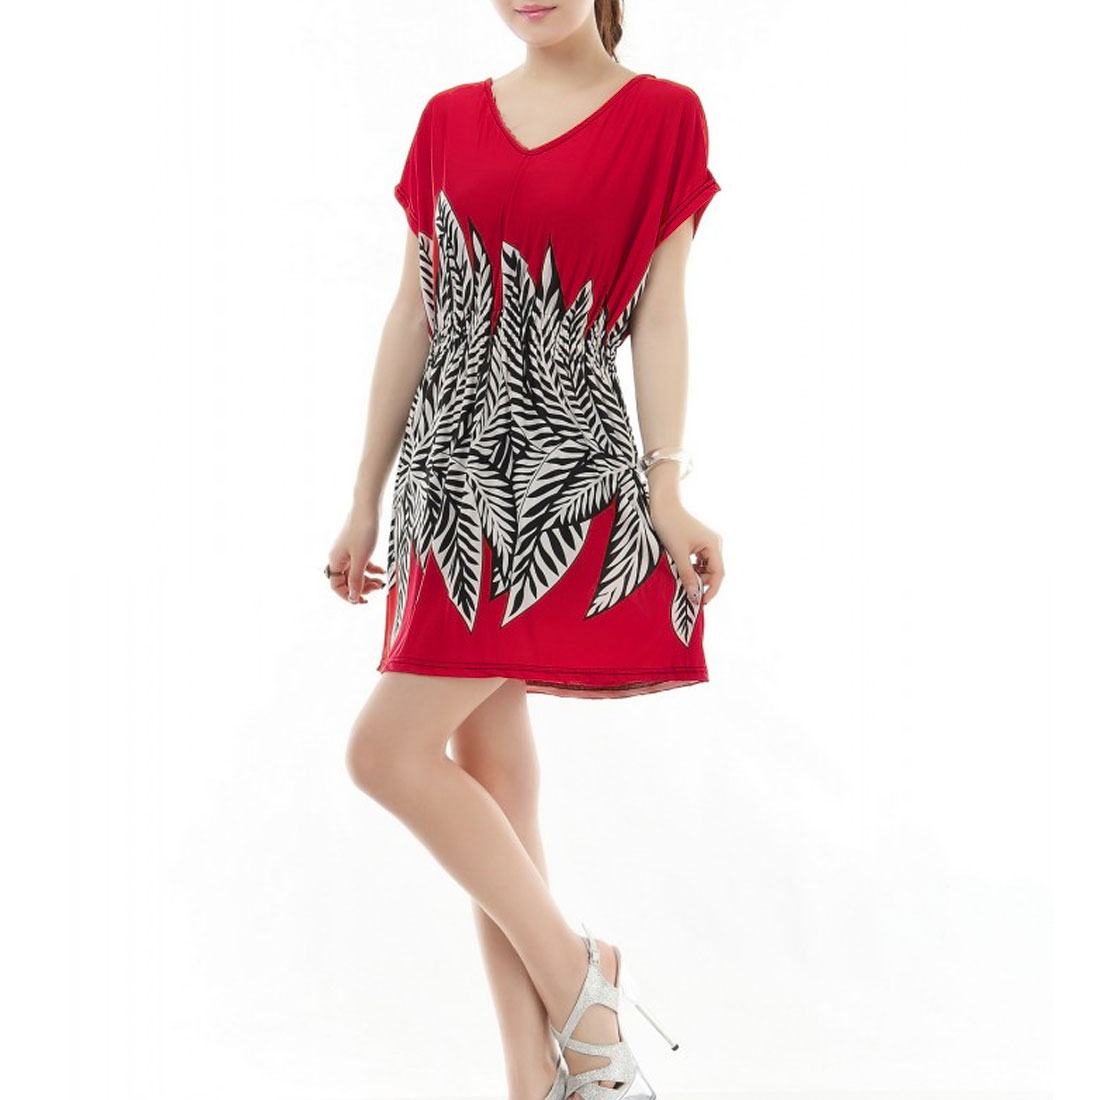 Double V Neck Black White Leaf Print Stylish Dress Red XS for Women